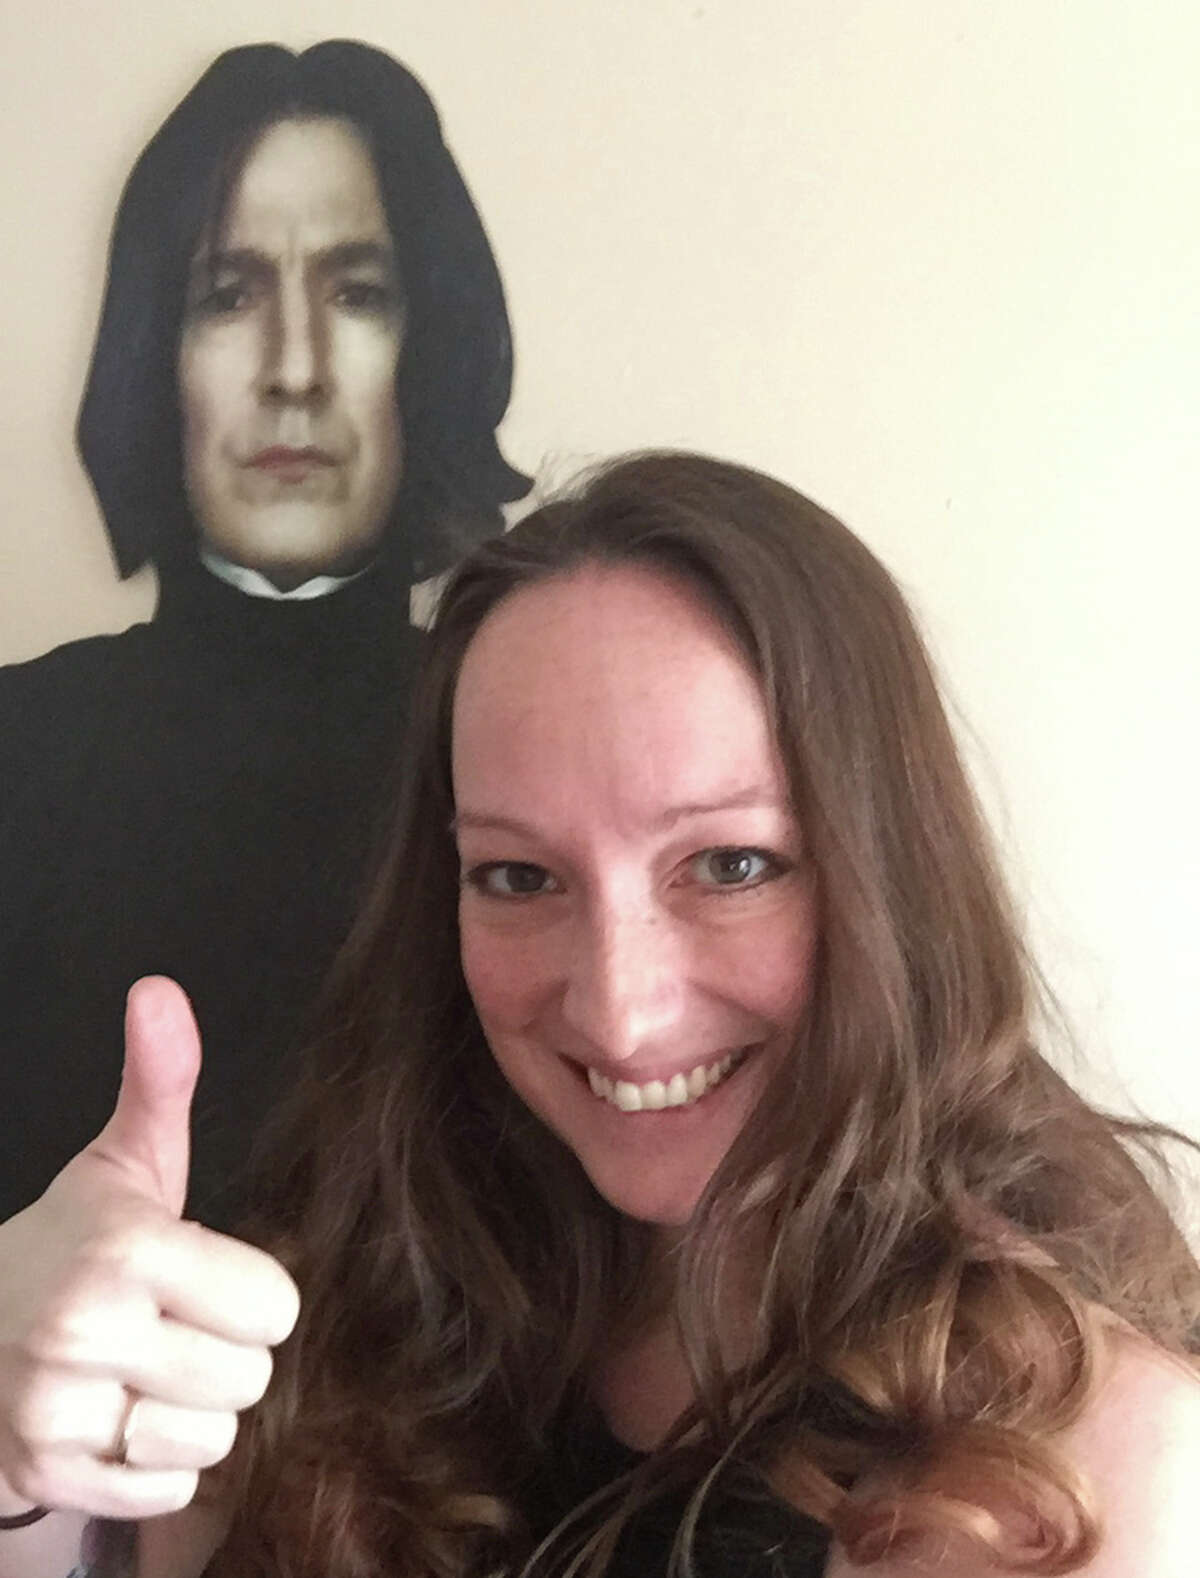 2. I have a six-foot cardboard cutout of Severus Snape in my bedroom closet.